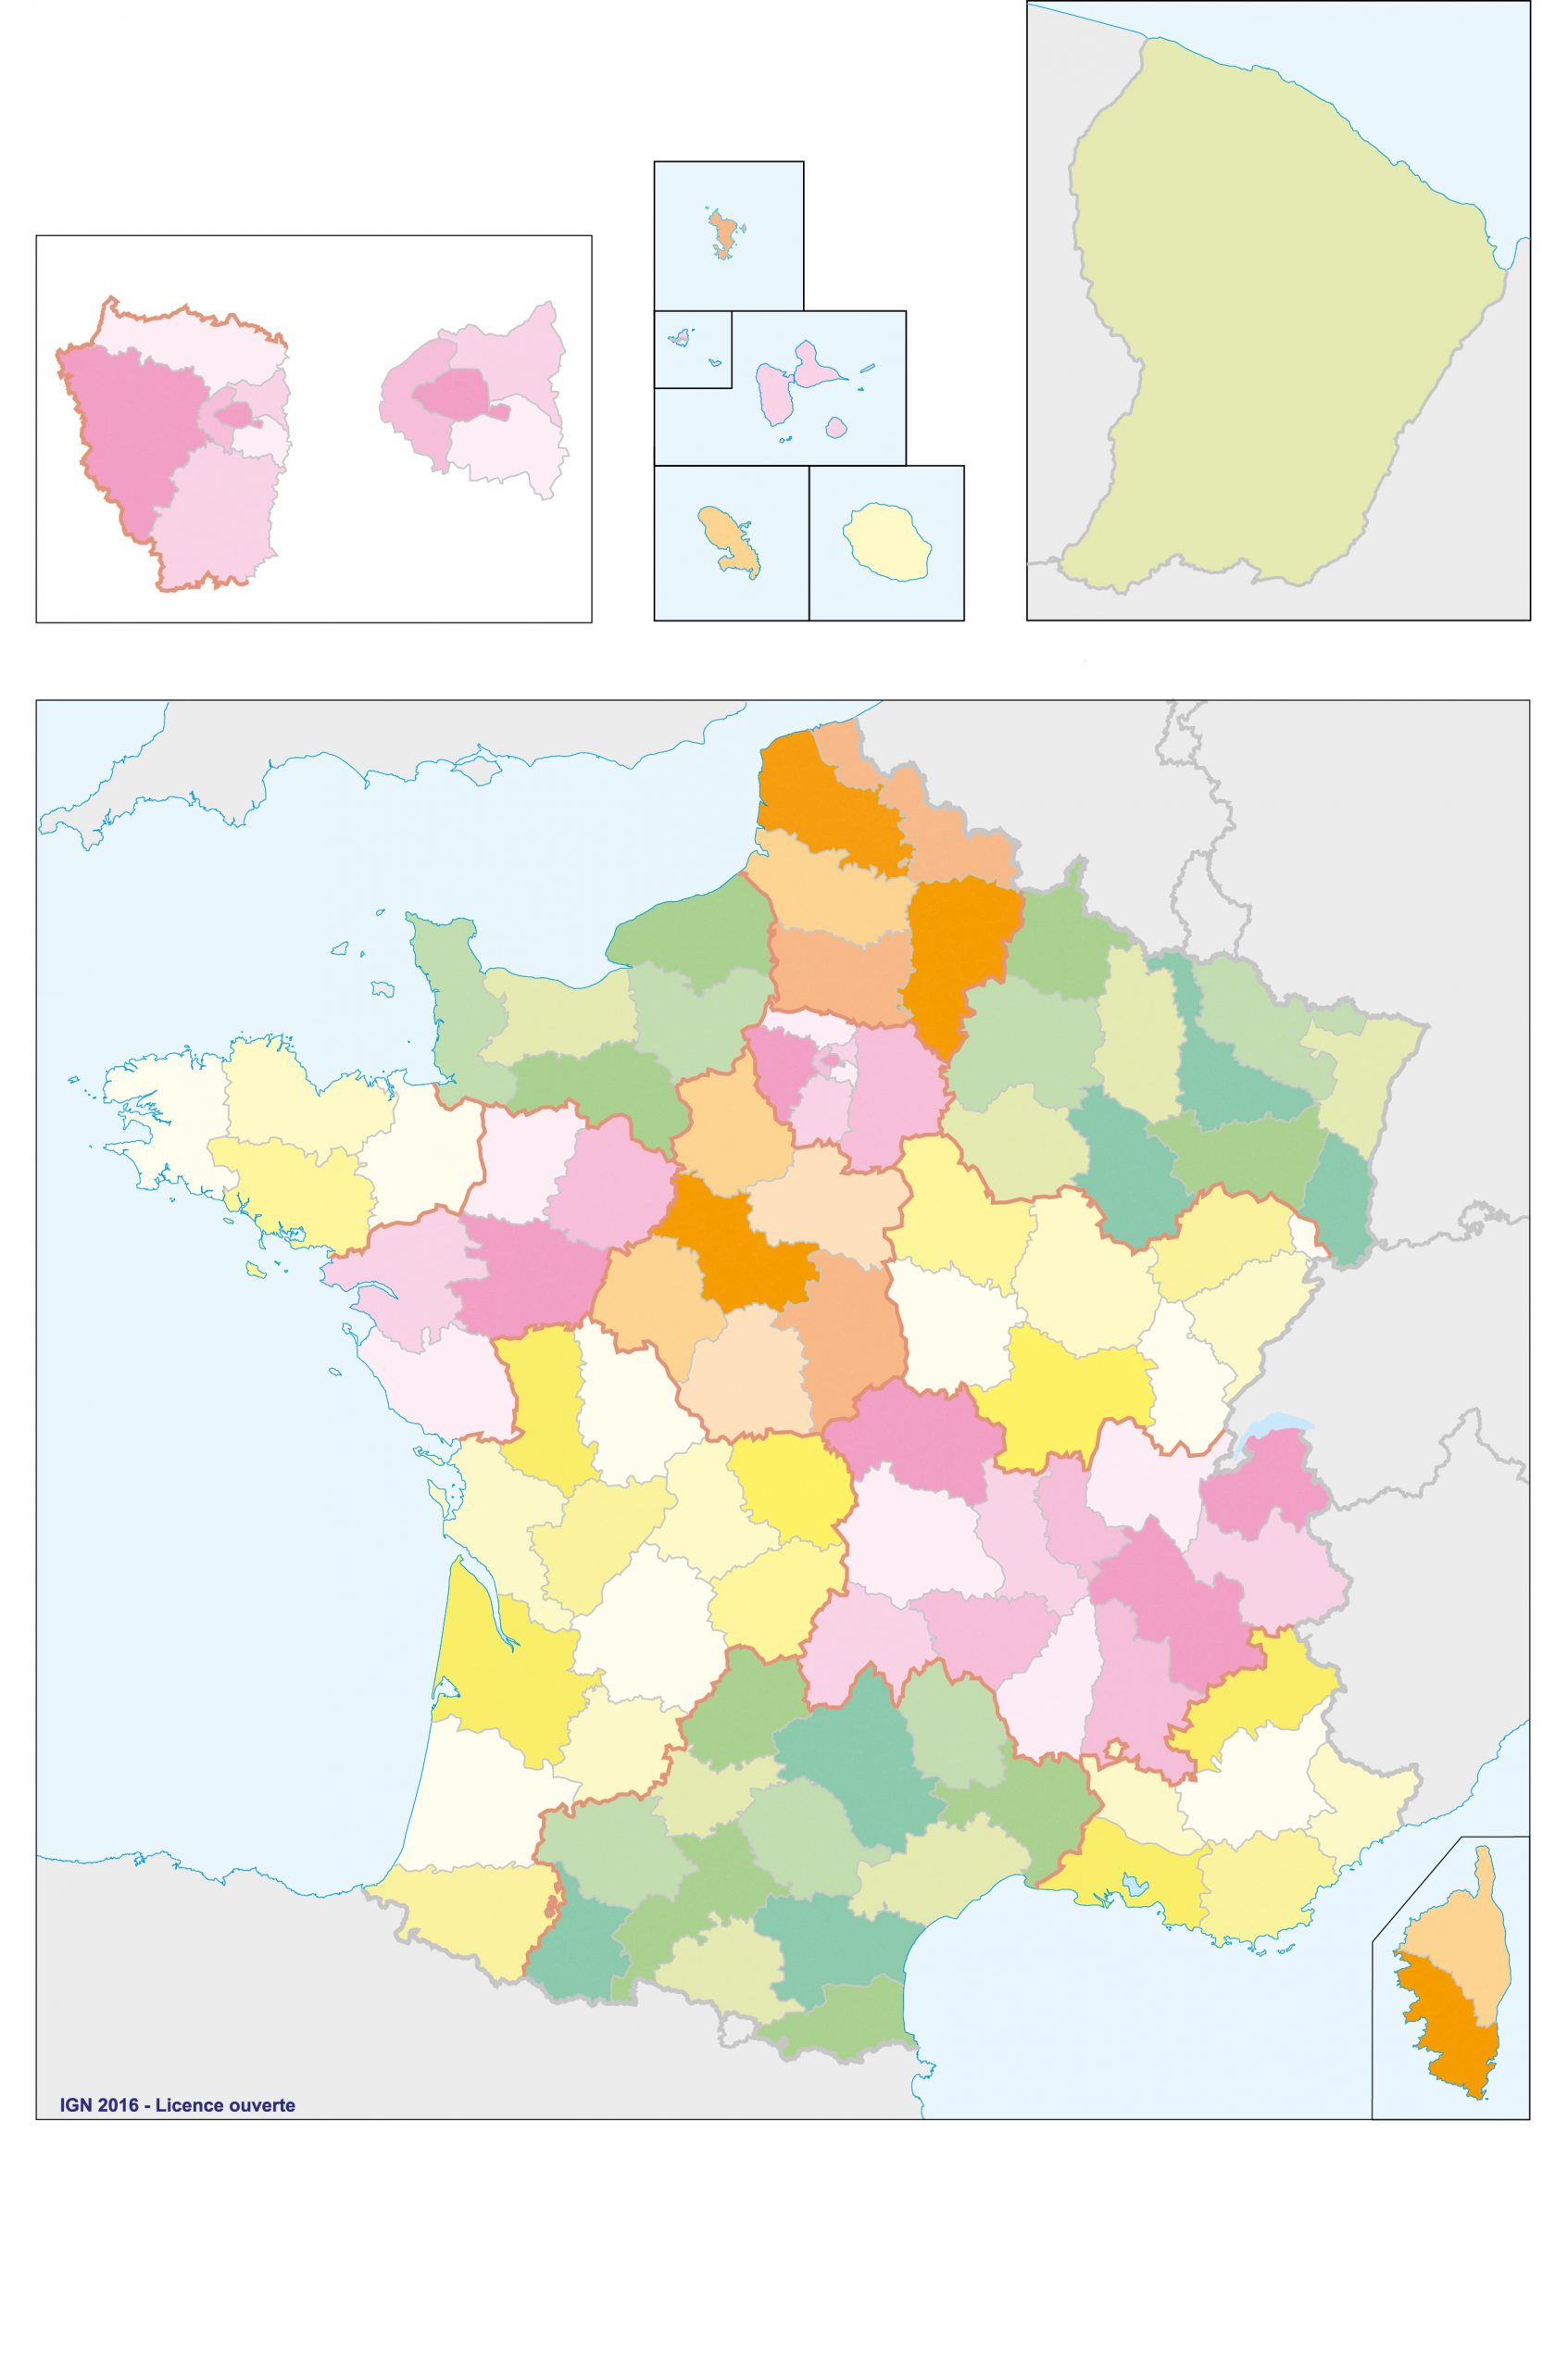 Fonds De Cartes | Éducation avec Plan De La France Par Departement